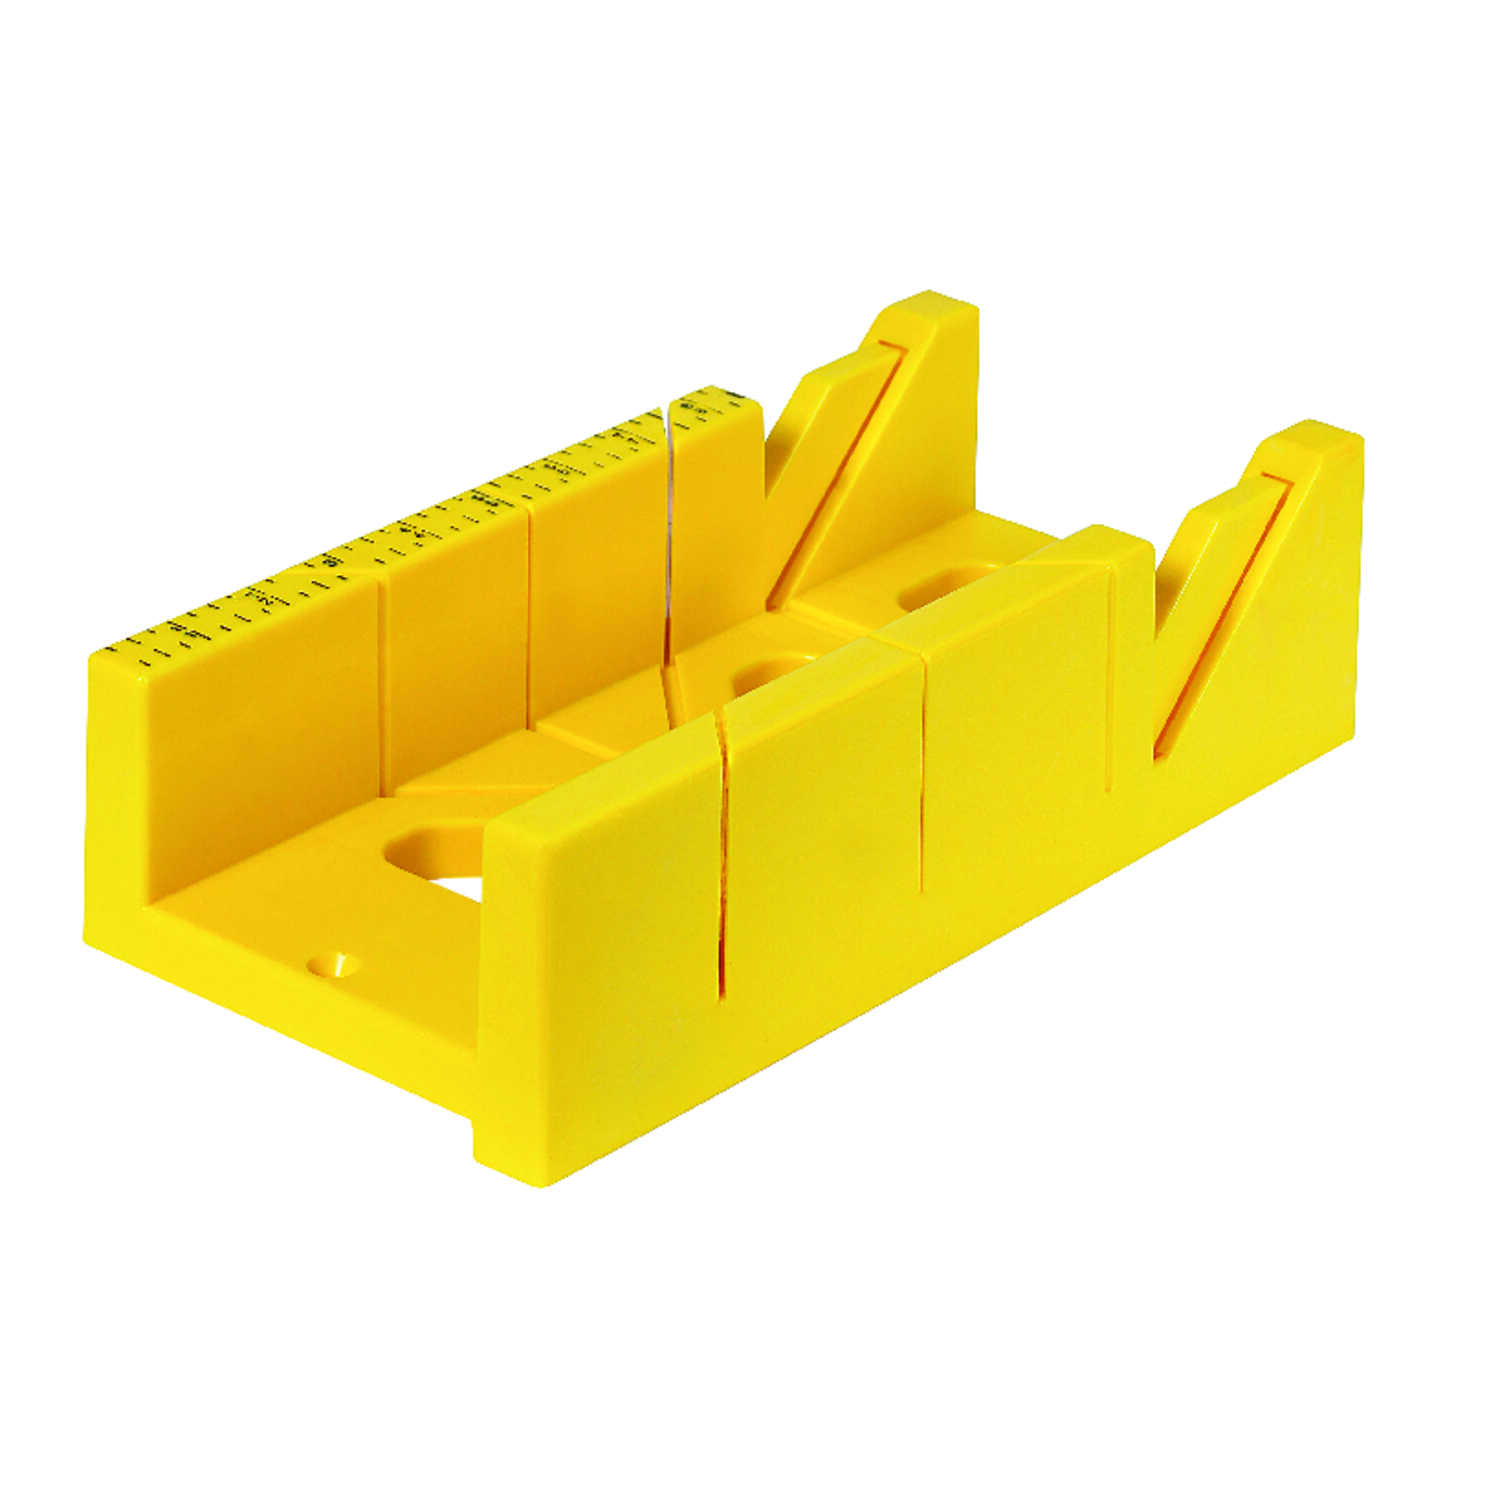 Ace  12 in. L x 4 in. W Plastic  Mitre Box  Yellow  1 pc.